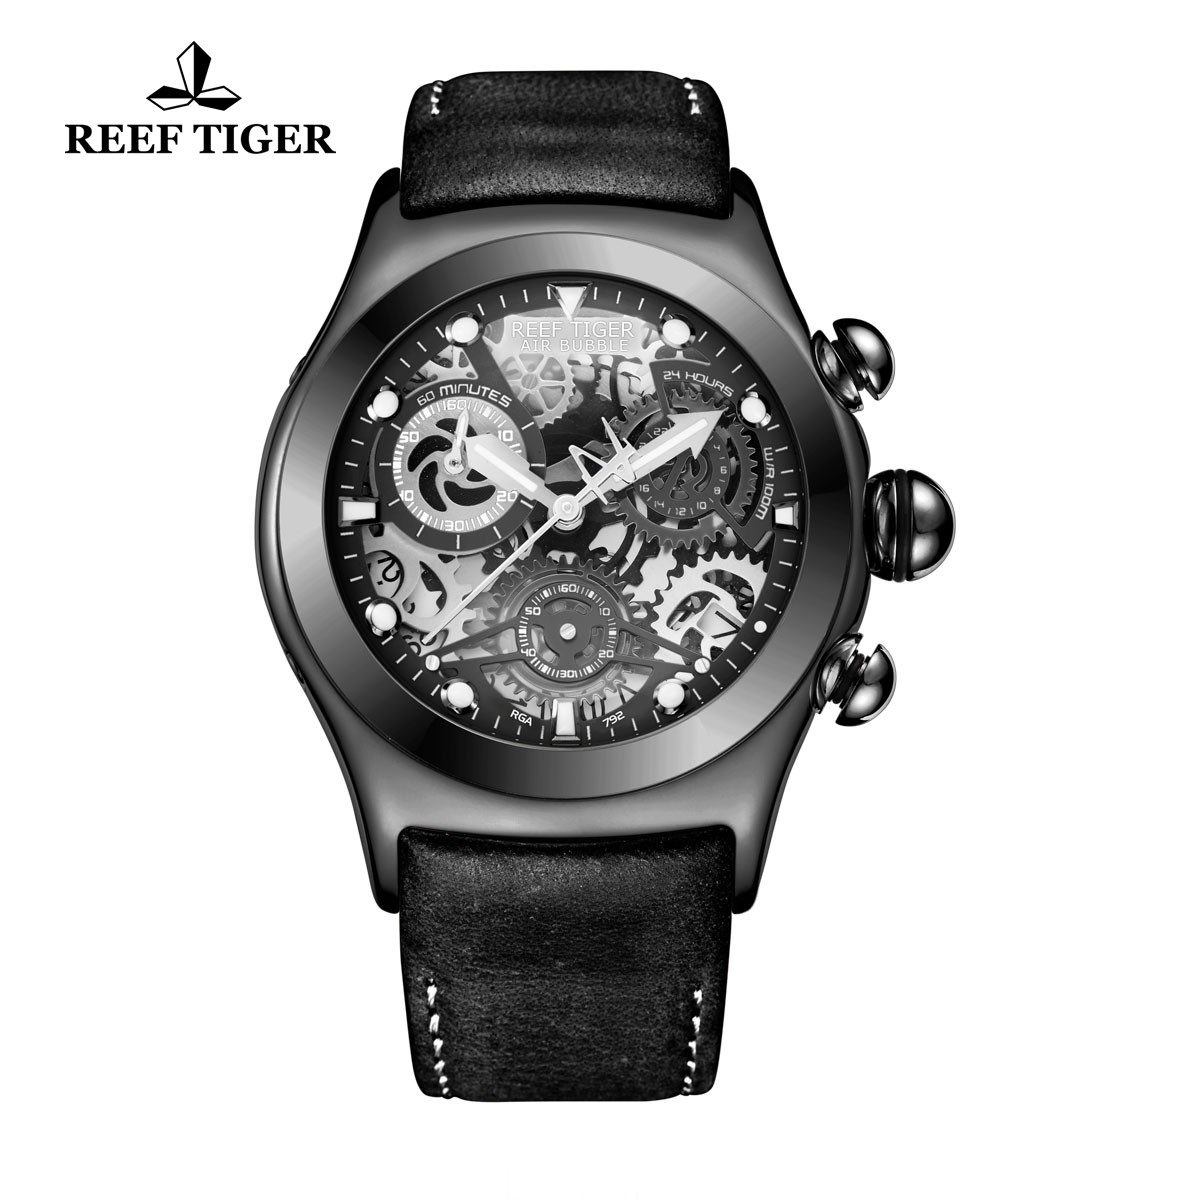 Reef Tiger Big Bang Sport Casual Watches Chronograph Watch PVD Case Leather Strap RGA792-BBBW